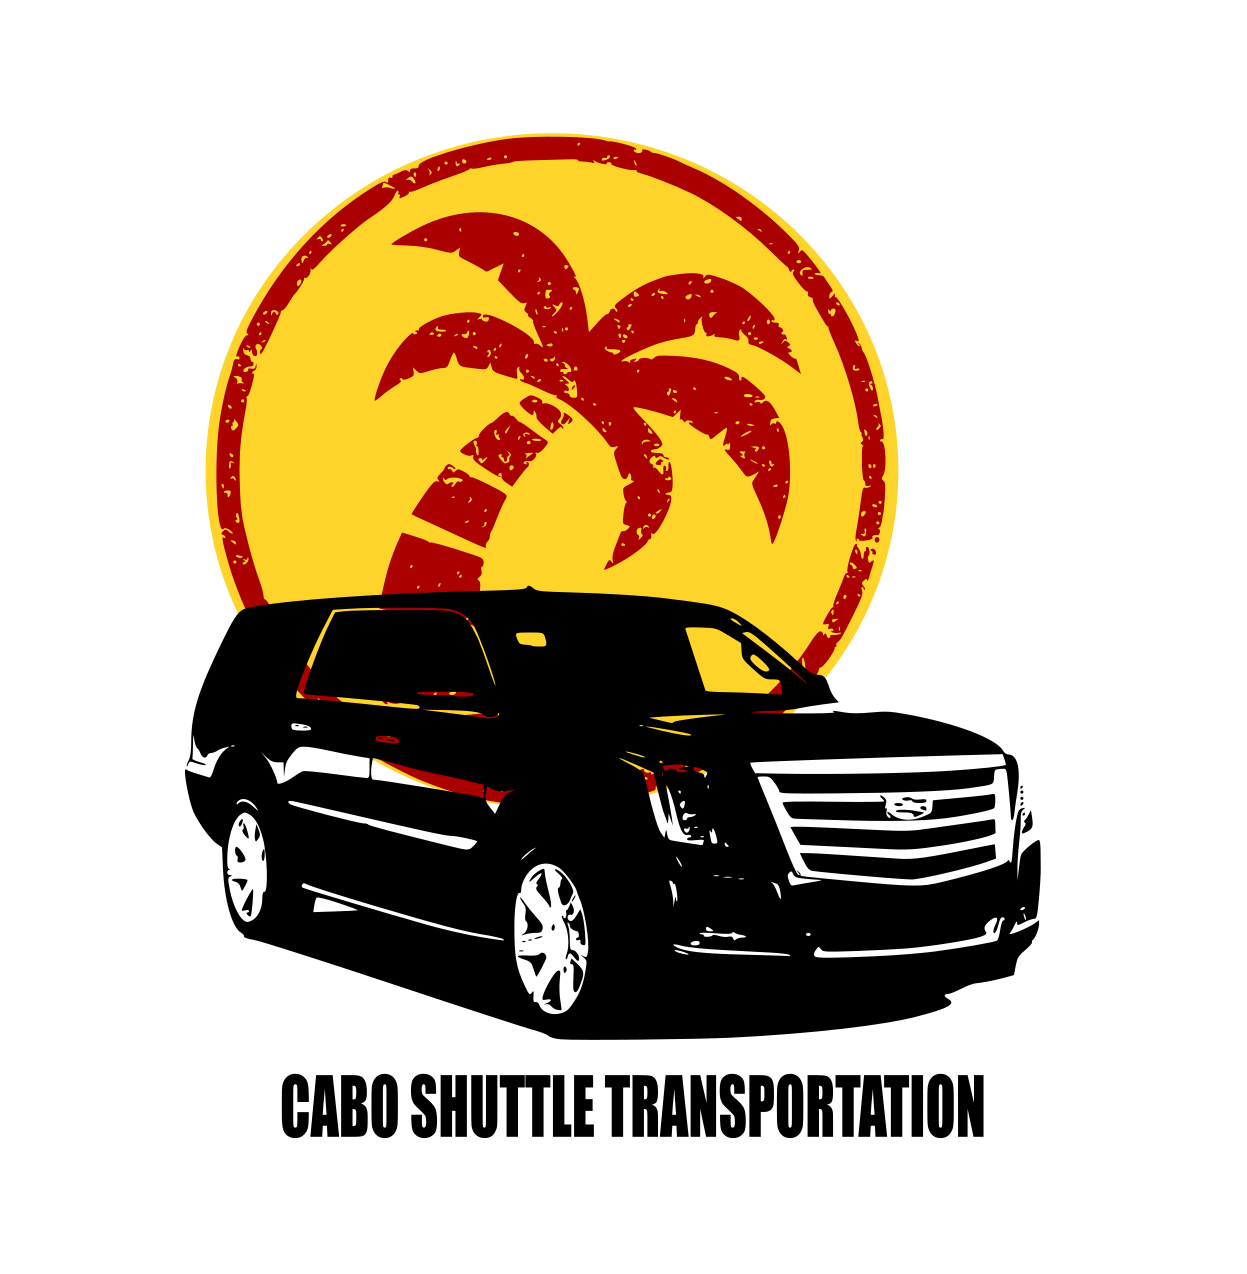 Cabo Shuttle Transportation